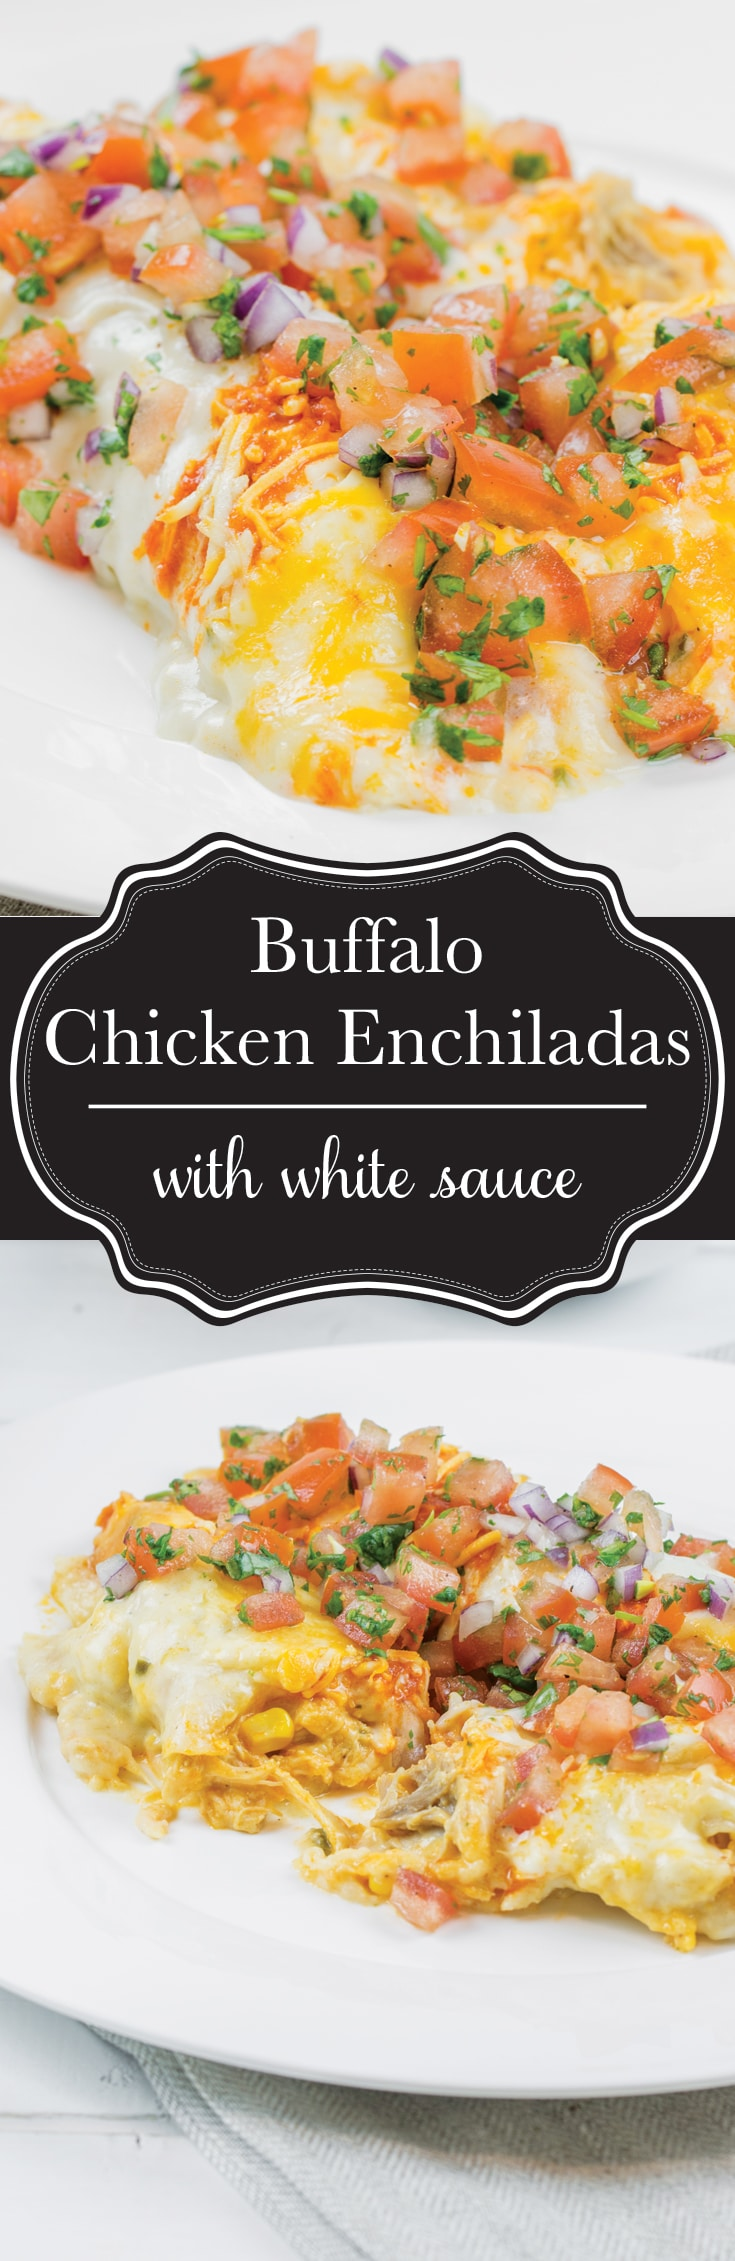 Buffalo chicken enchiladas with a jalapeno and sour cream white sauce. The ultimate man meal!